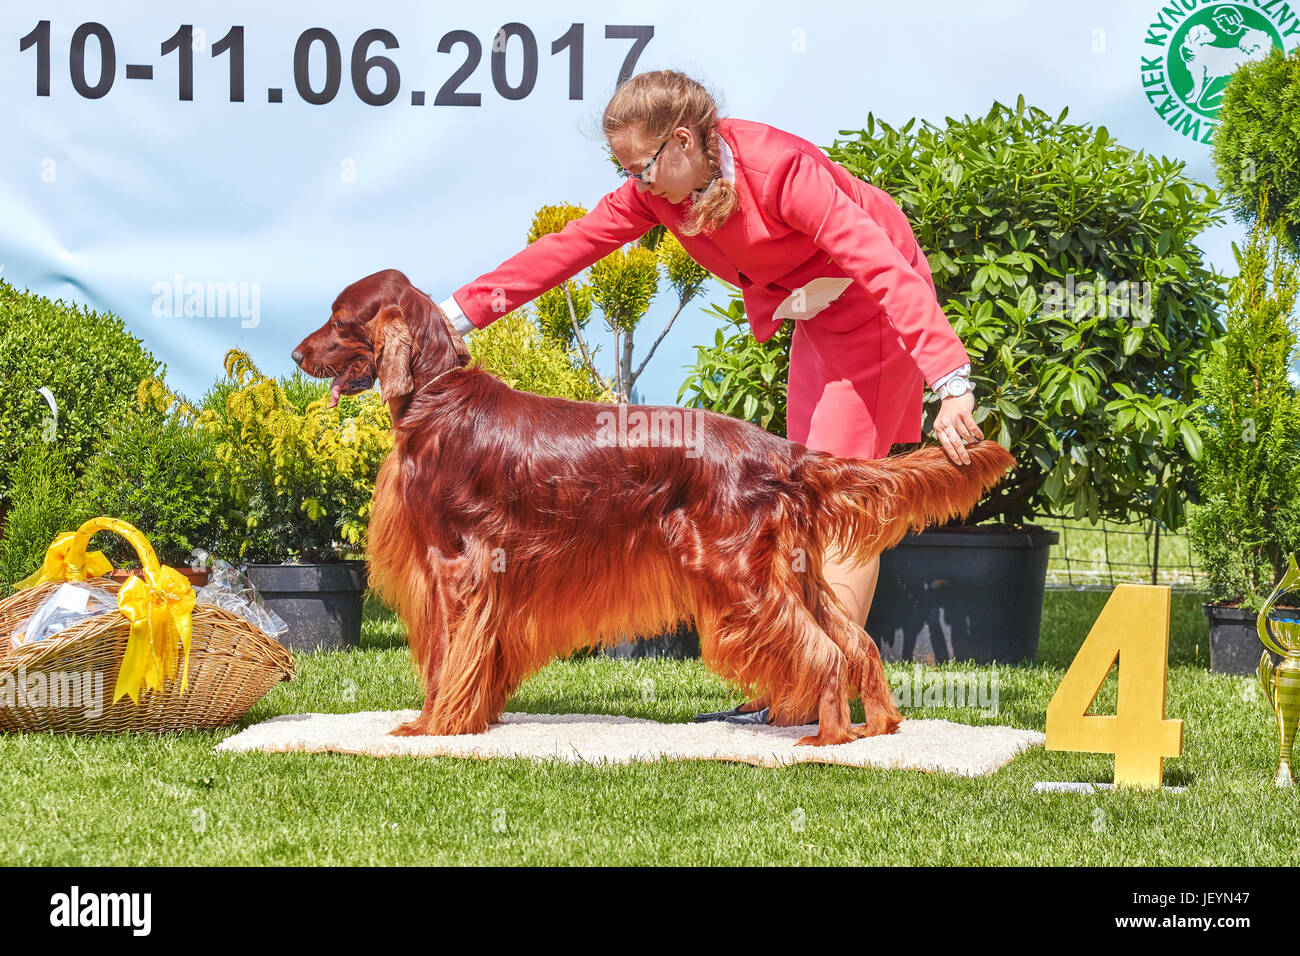 Szczecin, Poland - June 10, 2017: Woman presenting Irish Setter at the 31st West Pomeranian National Dog Show. - Stock Image